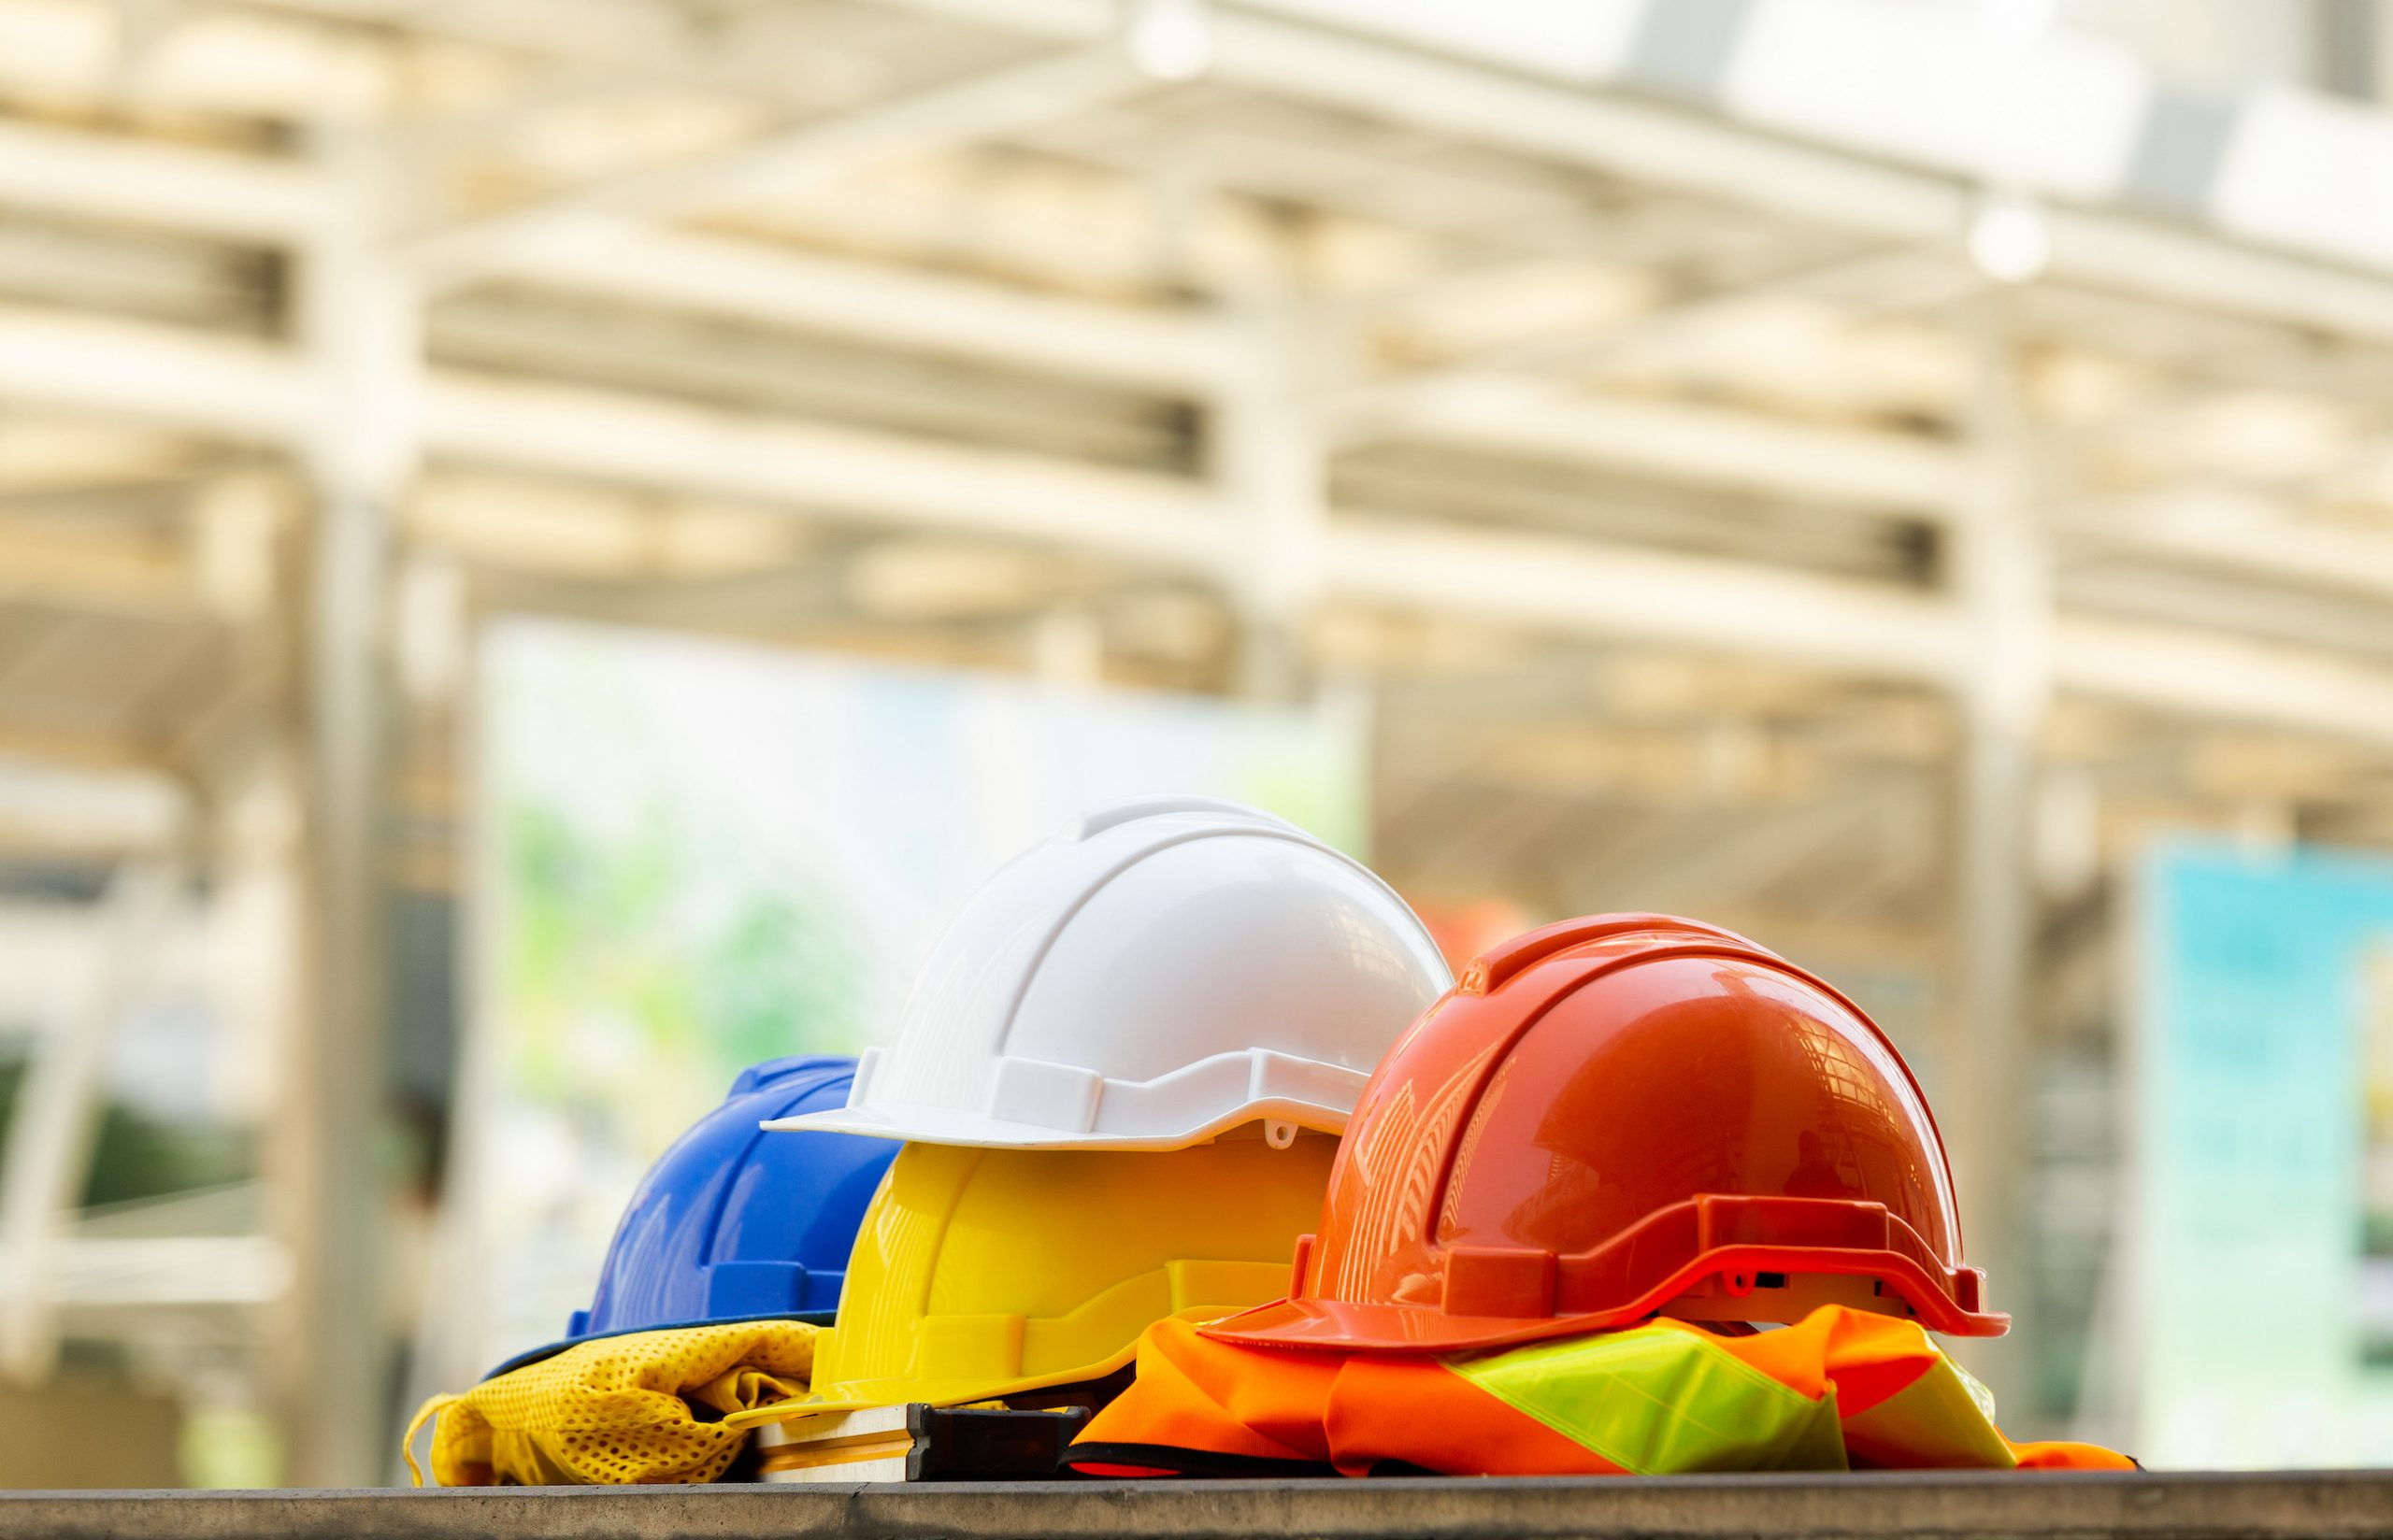 Five Methods to Improve Construction Safety